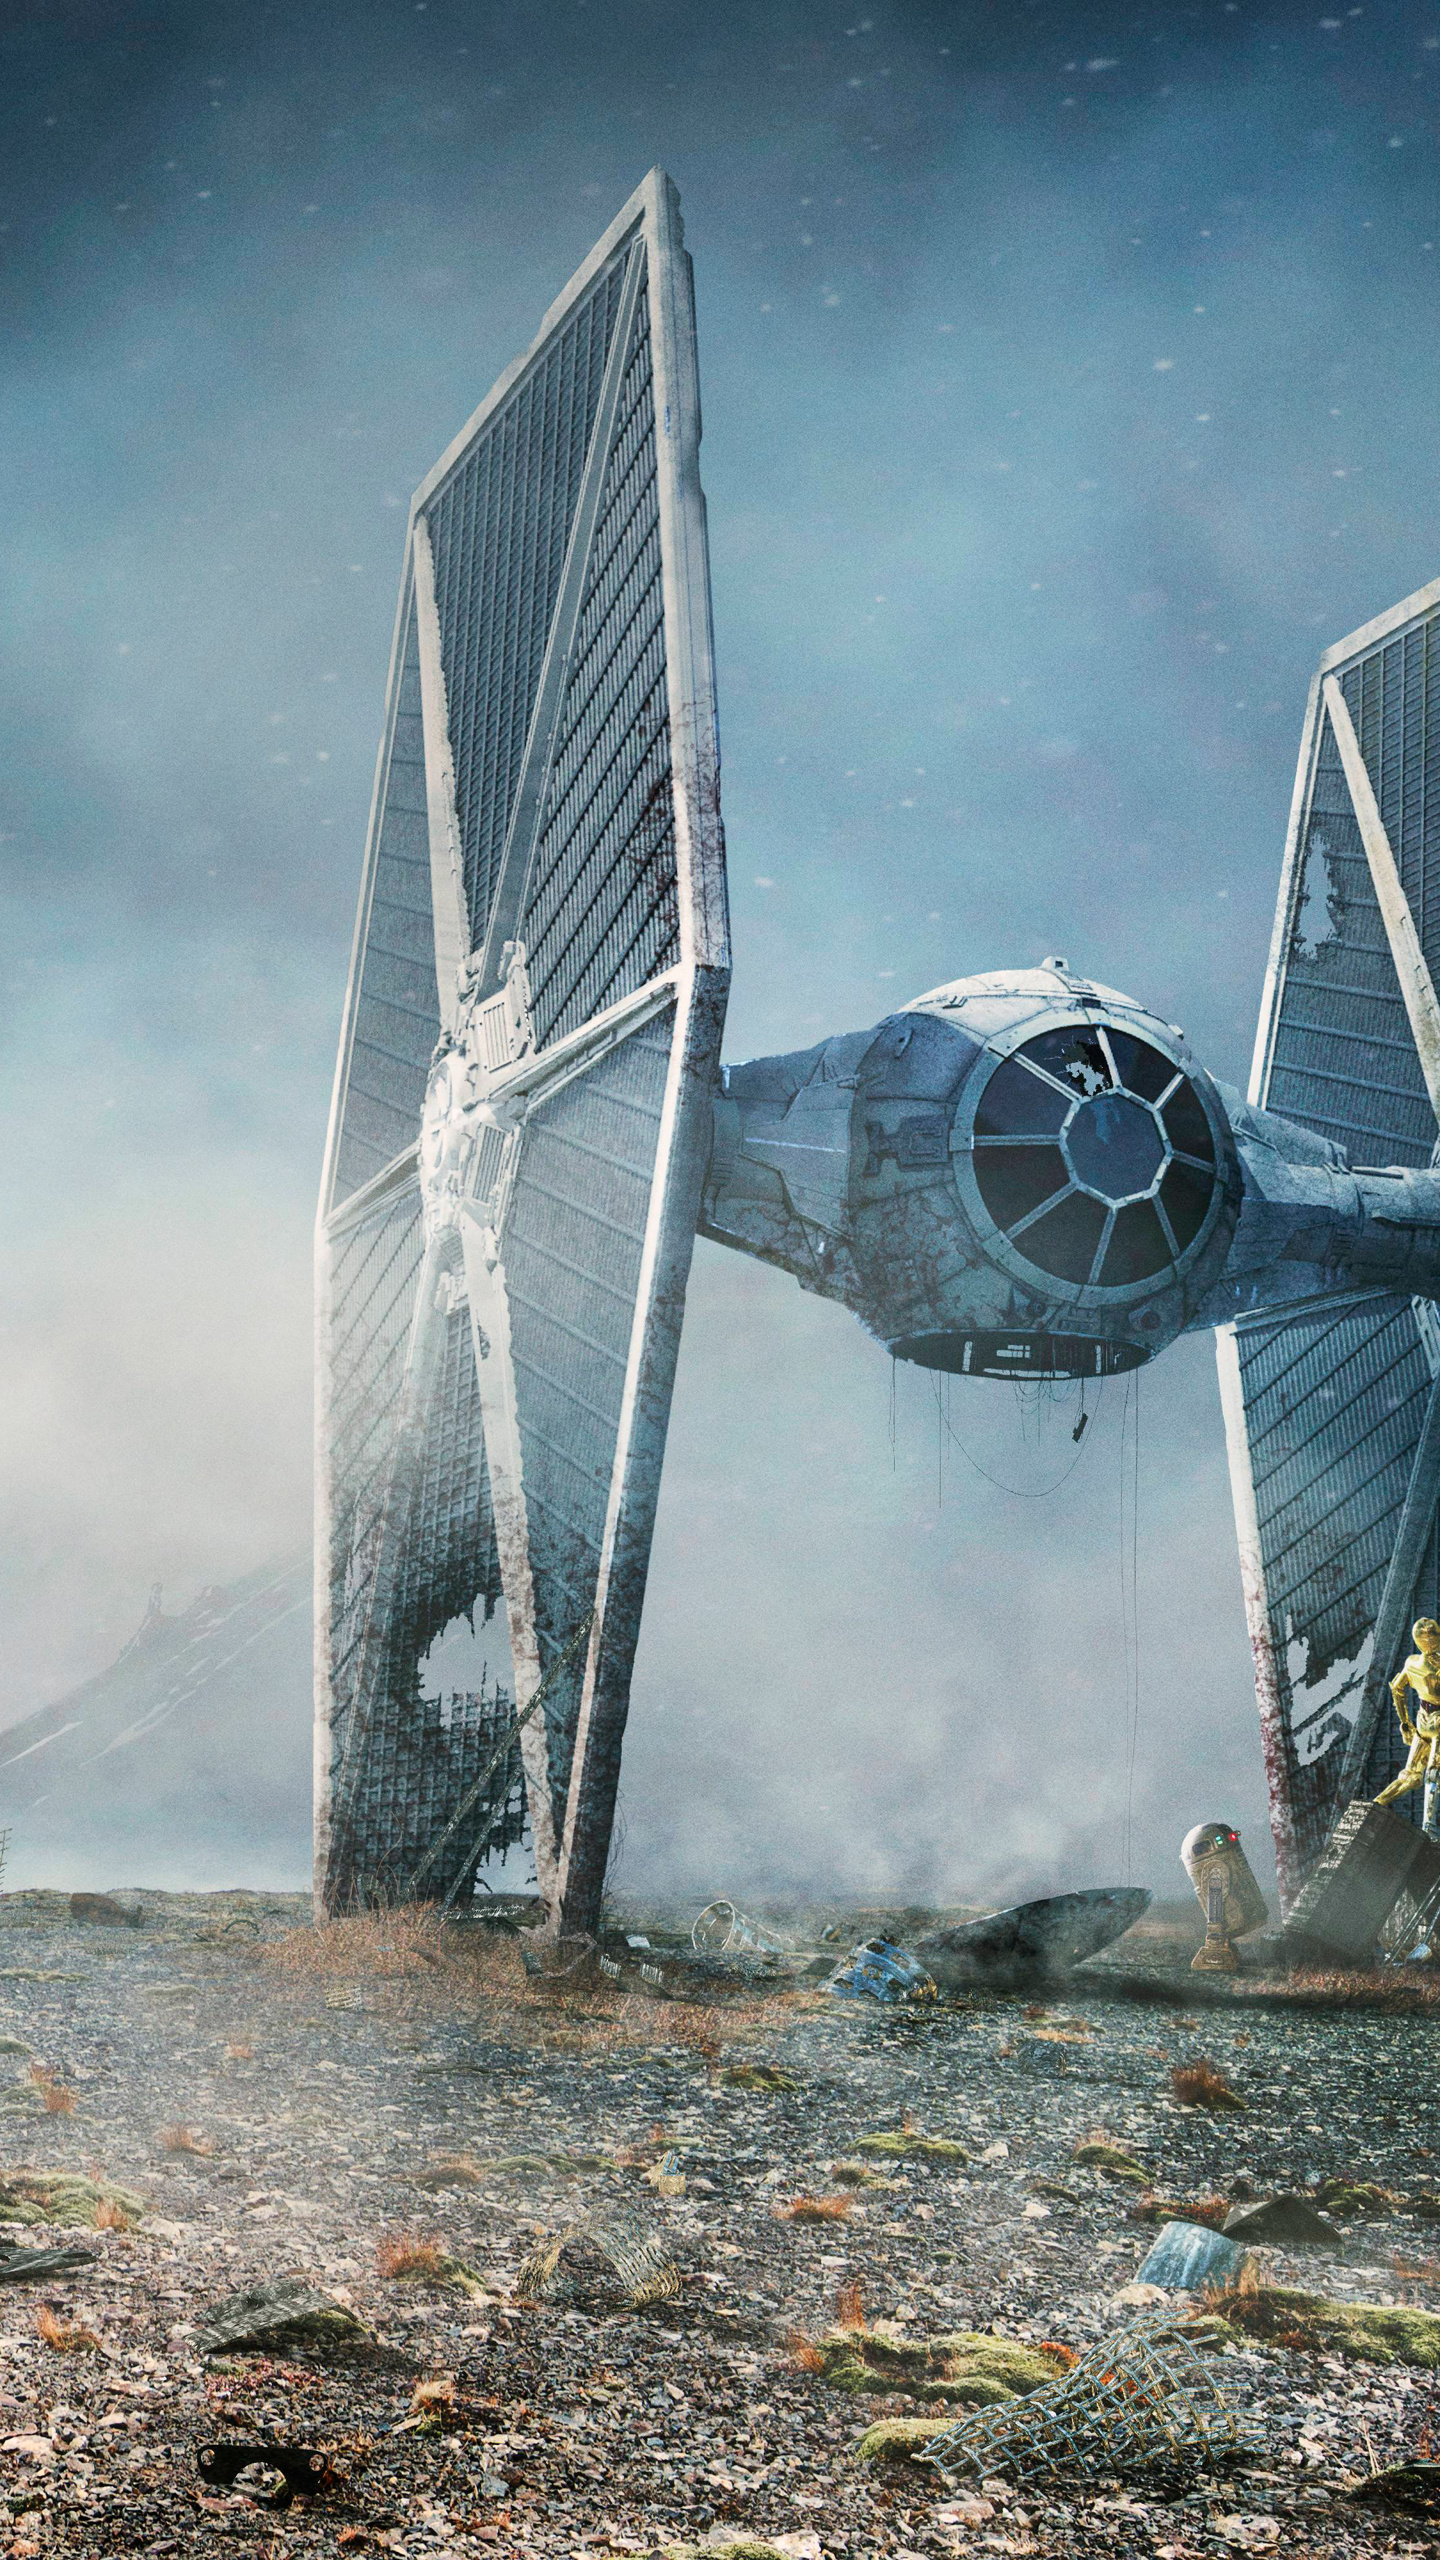 1440x2560 Tie Fighter Star Wars Samsung Galaxy S6 S7 Google Pixel Xl Nexus 6 6p Lg G5 Wallpaper Hd Movies 4k Wallpapers Images Photos And Background